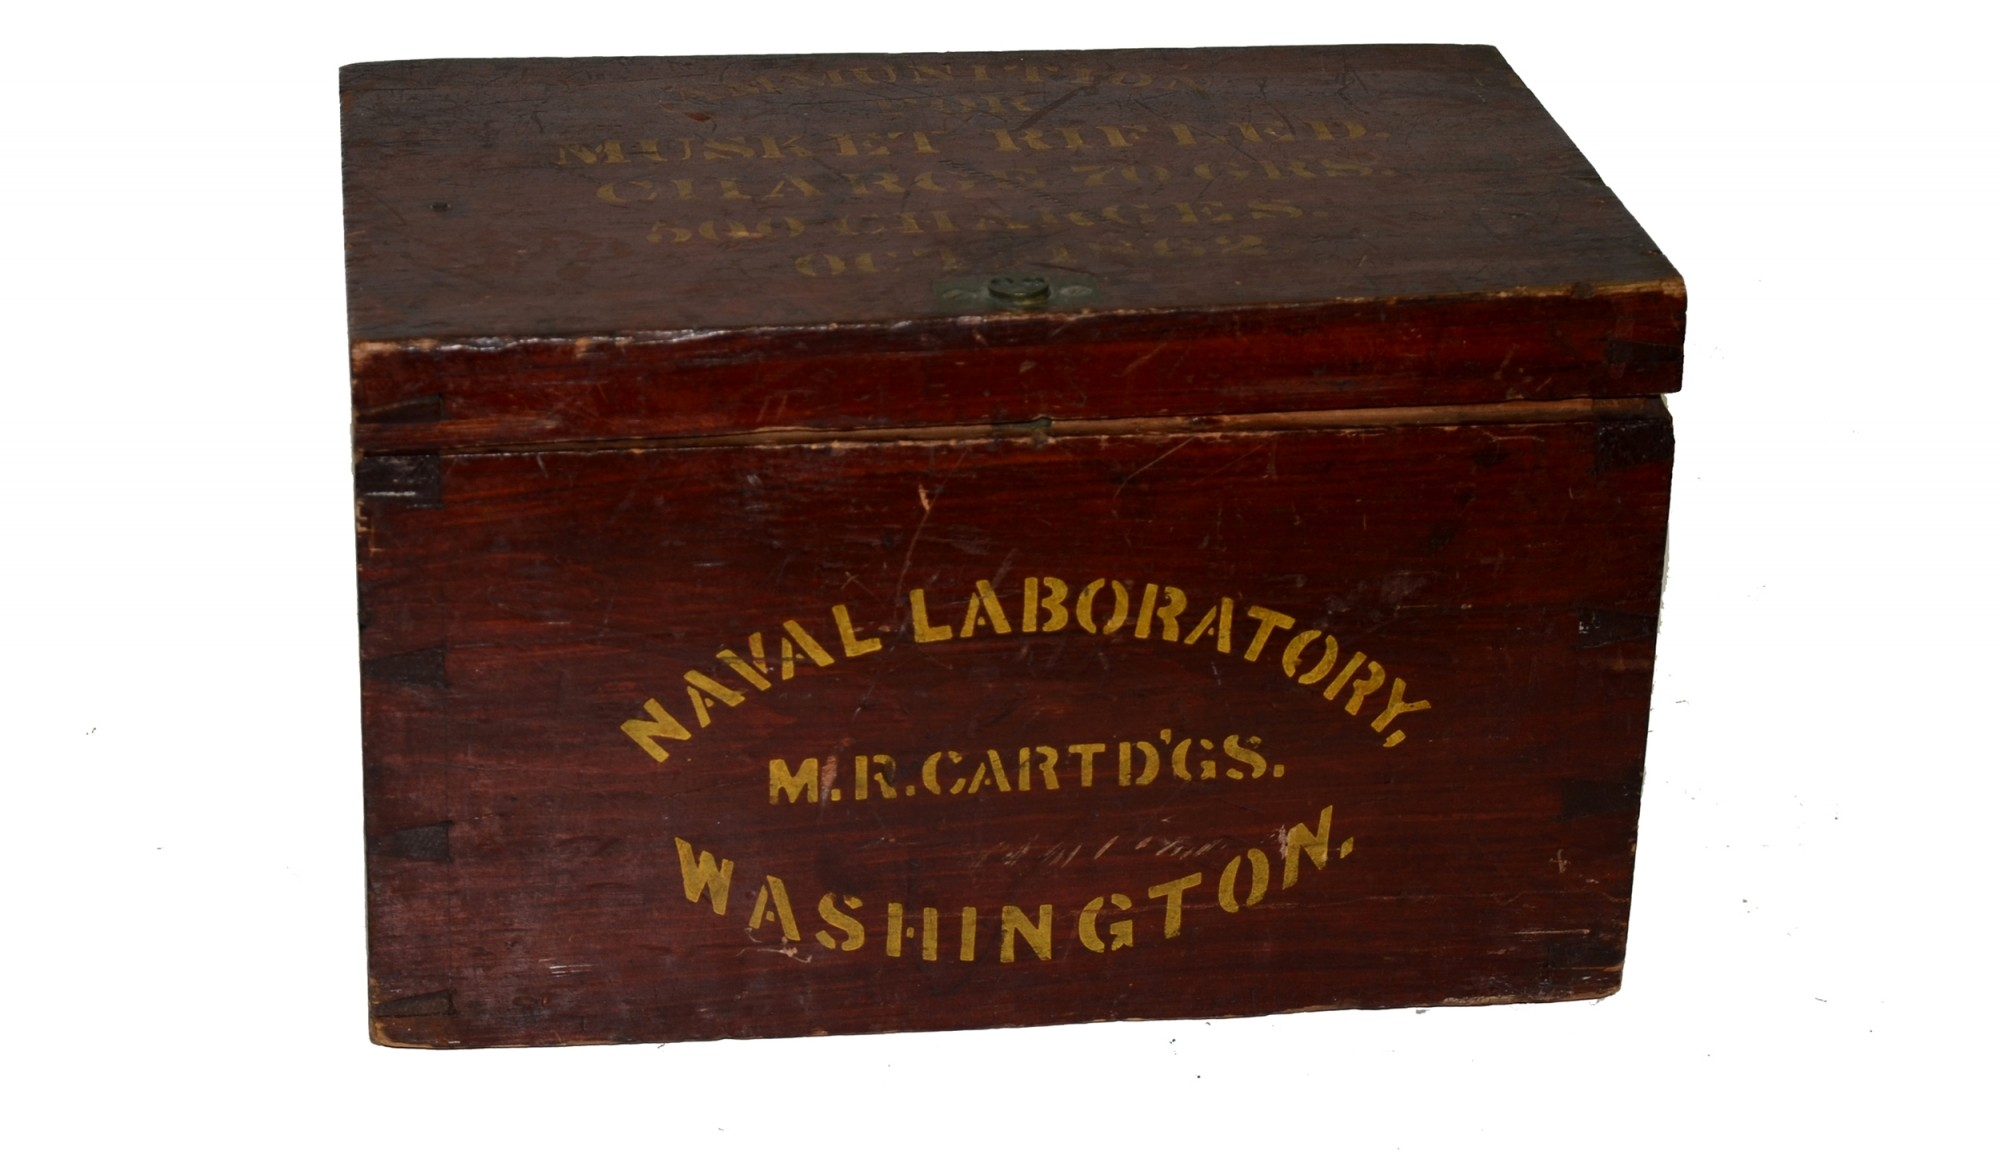 NAVAL LABORATORY CRATE FOR RIFLED MUSKET CARTRIDGES